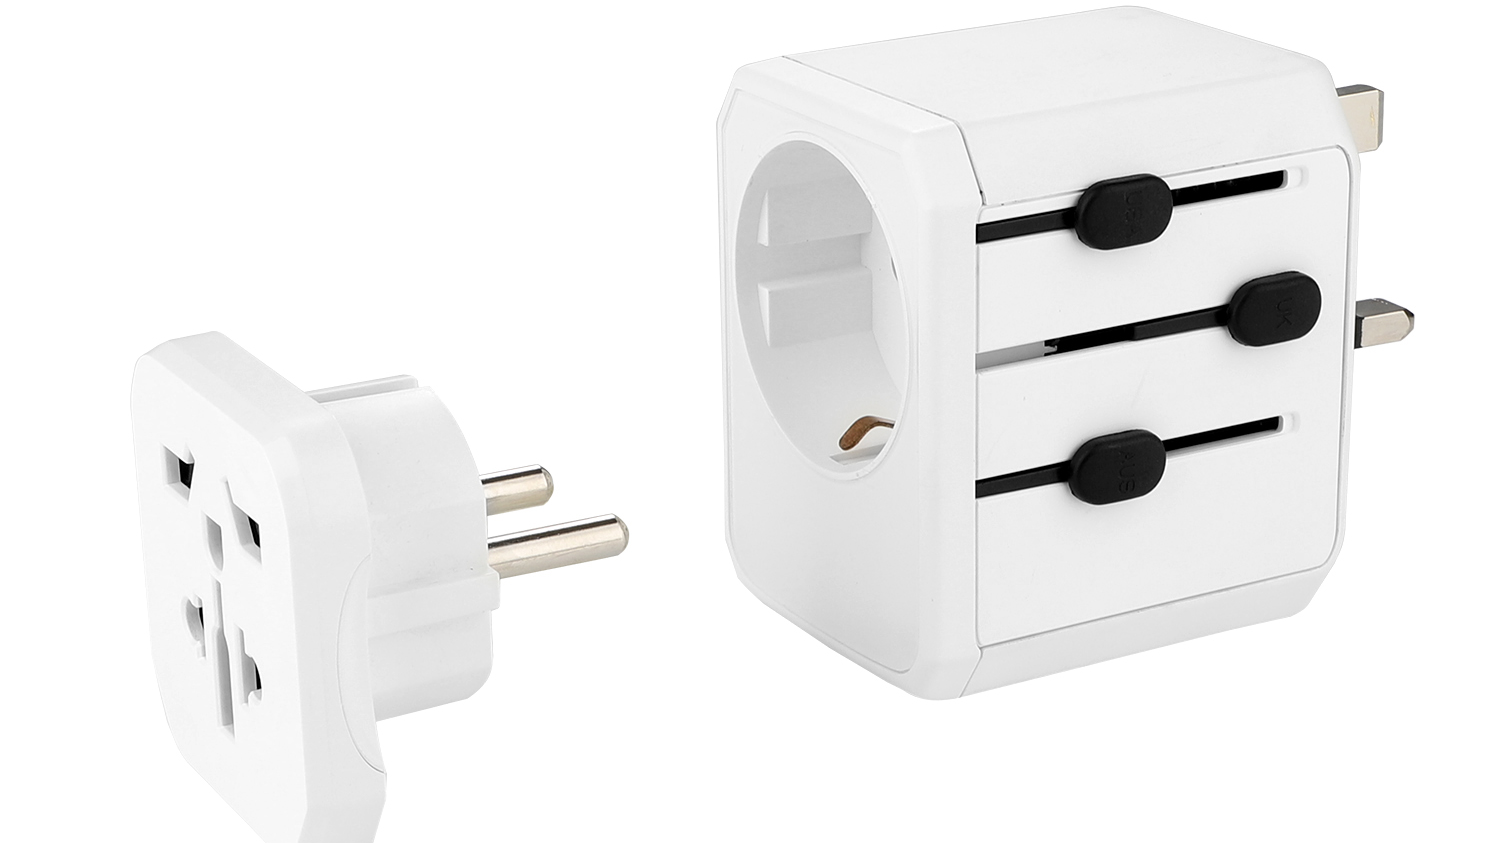 Earth pin 880W-2500W world travel adapter with 3 usb + Type C port,grounding travel adapor for UK BS8546